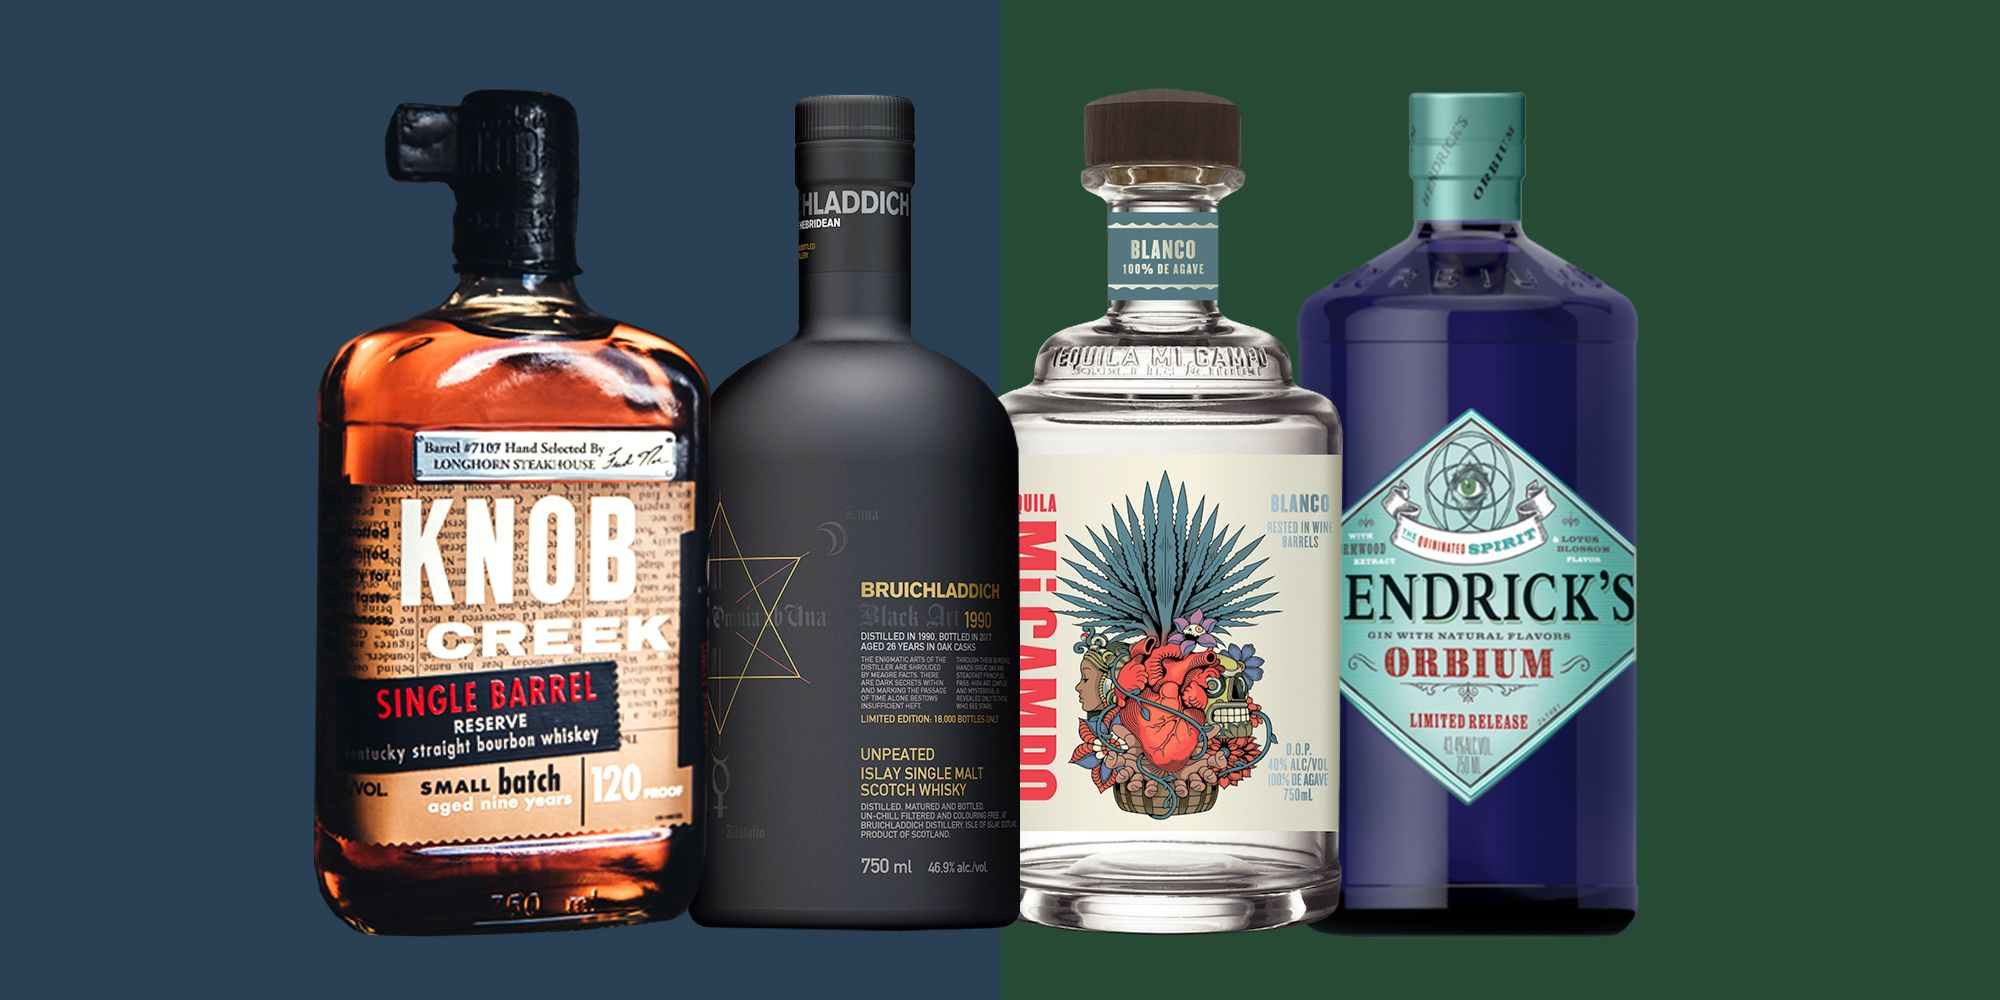 The 21 Best New Booze Bottles of 2018